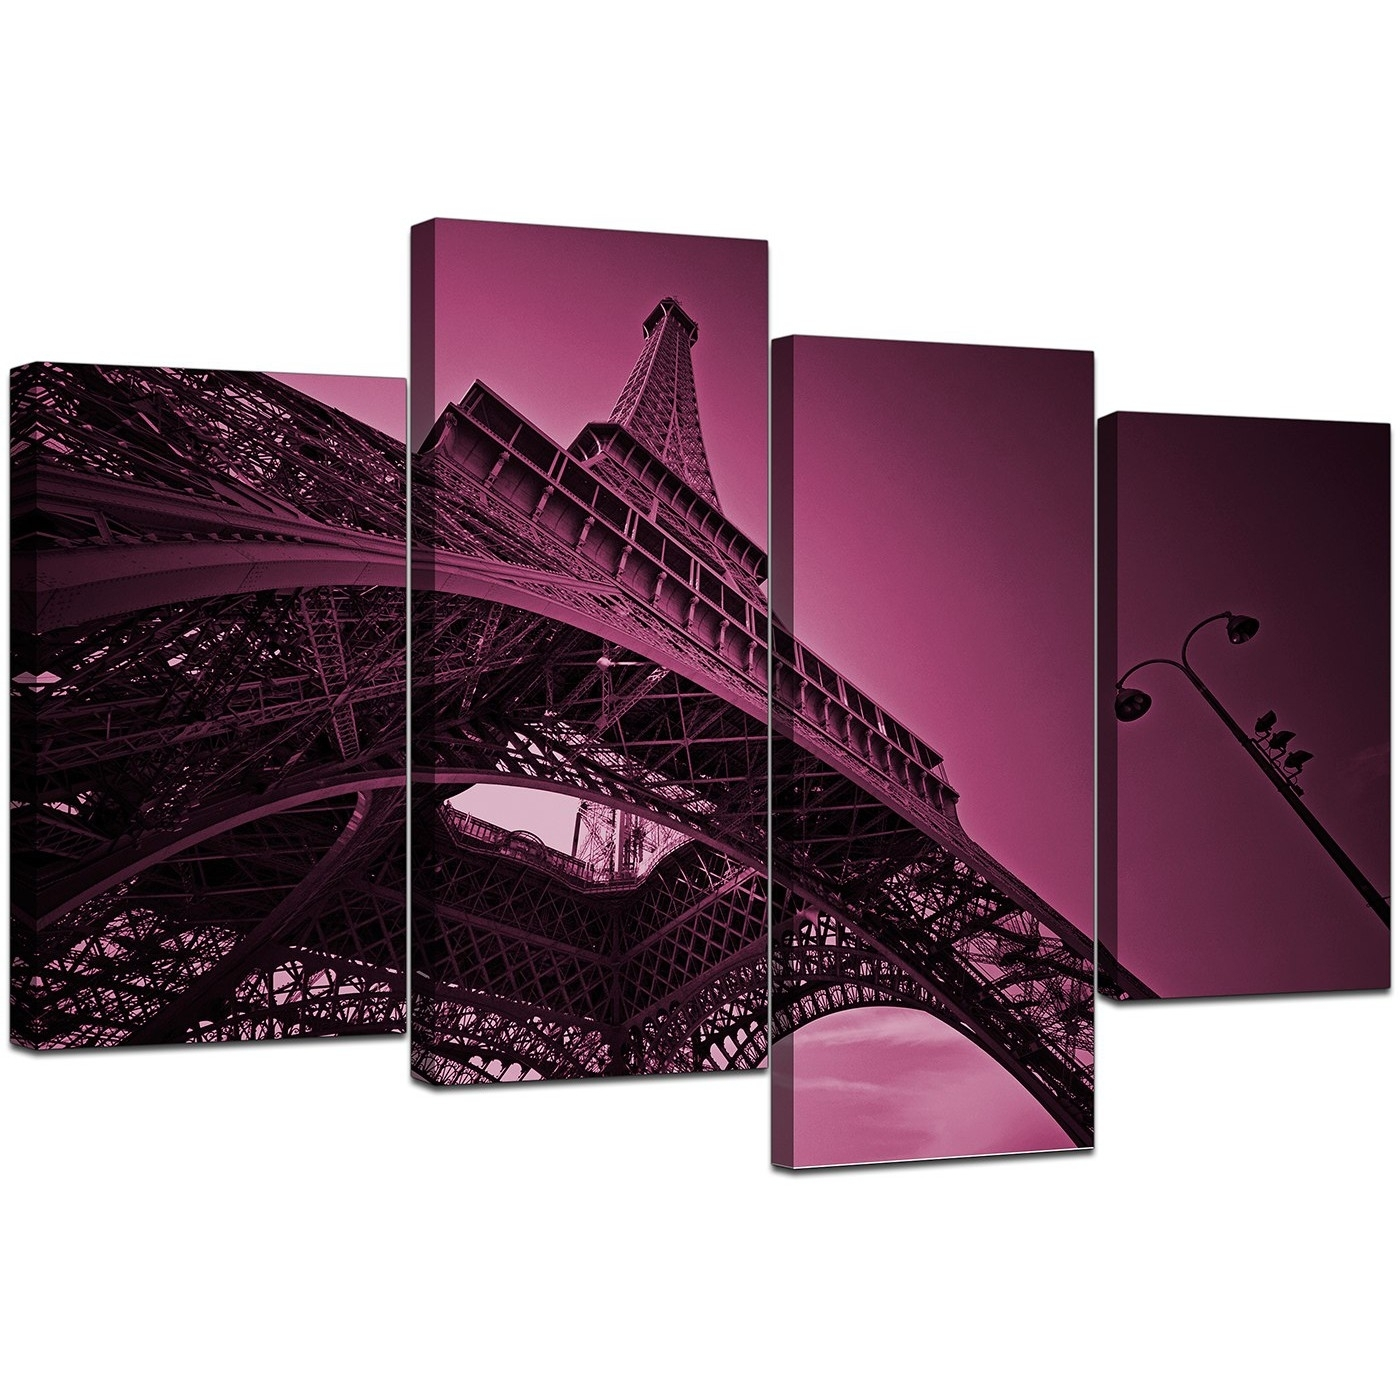 Eiffel Tower Canvas Wall Art In Plum – For Bedroom Regarding Most Recent Eiffel Tower Canvas Wall Art (View 5 of 15)